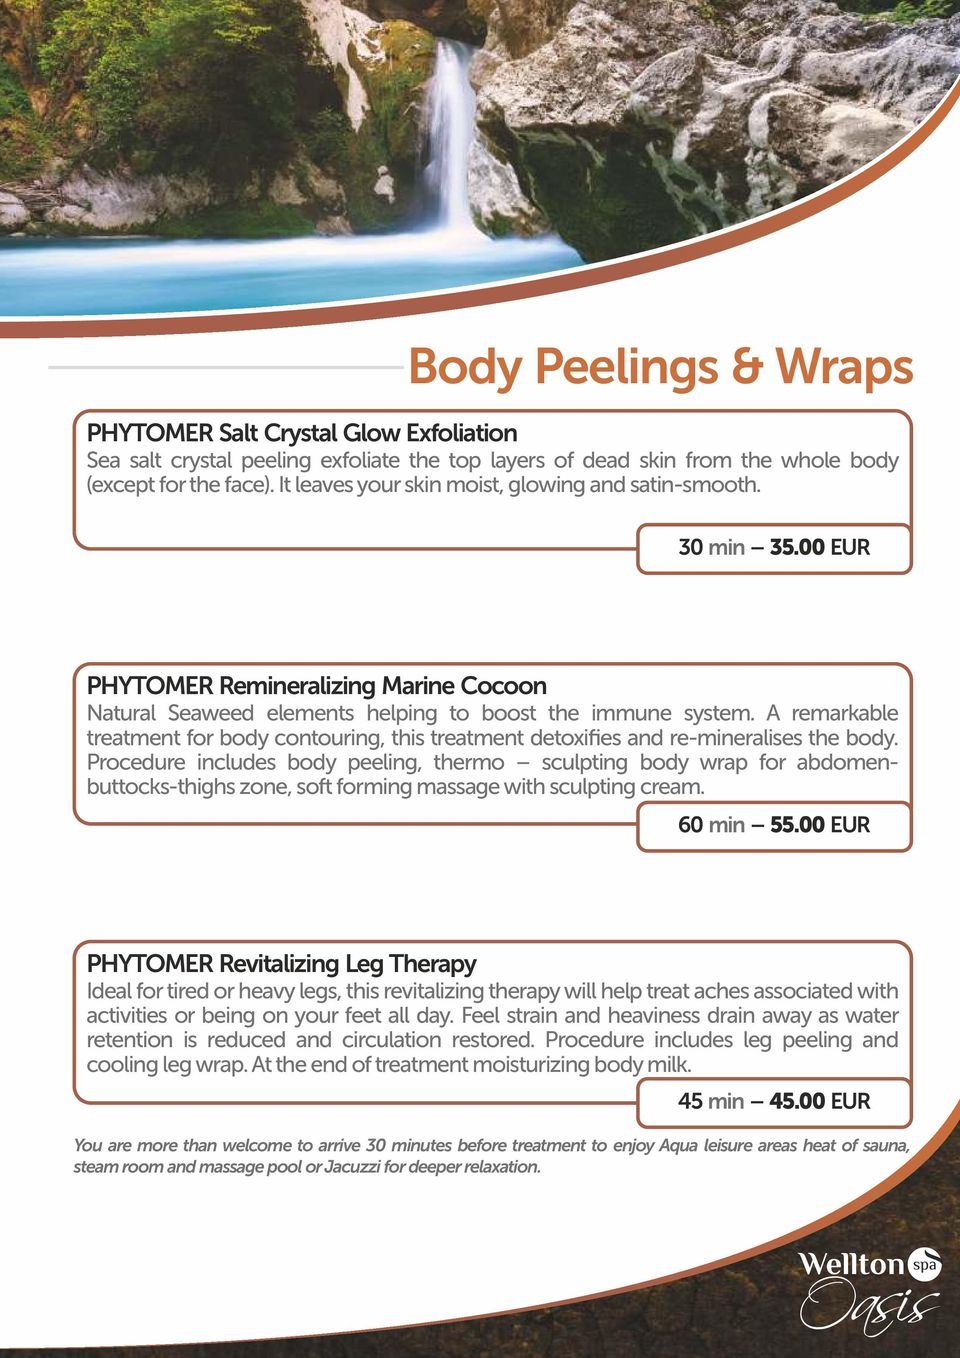 A remarkable treatment for body contouring, this treatment detoxifies and re-mineralises the body.